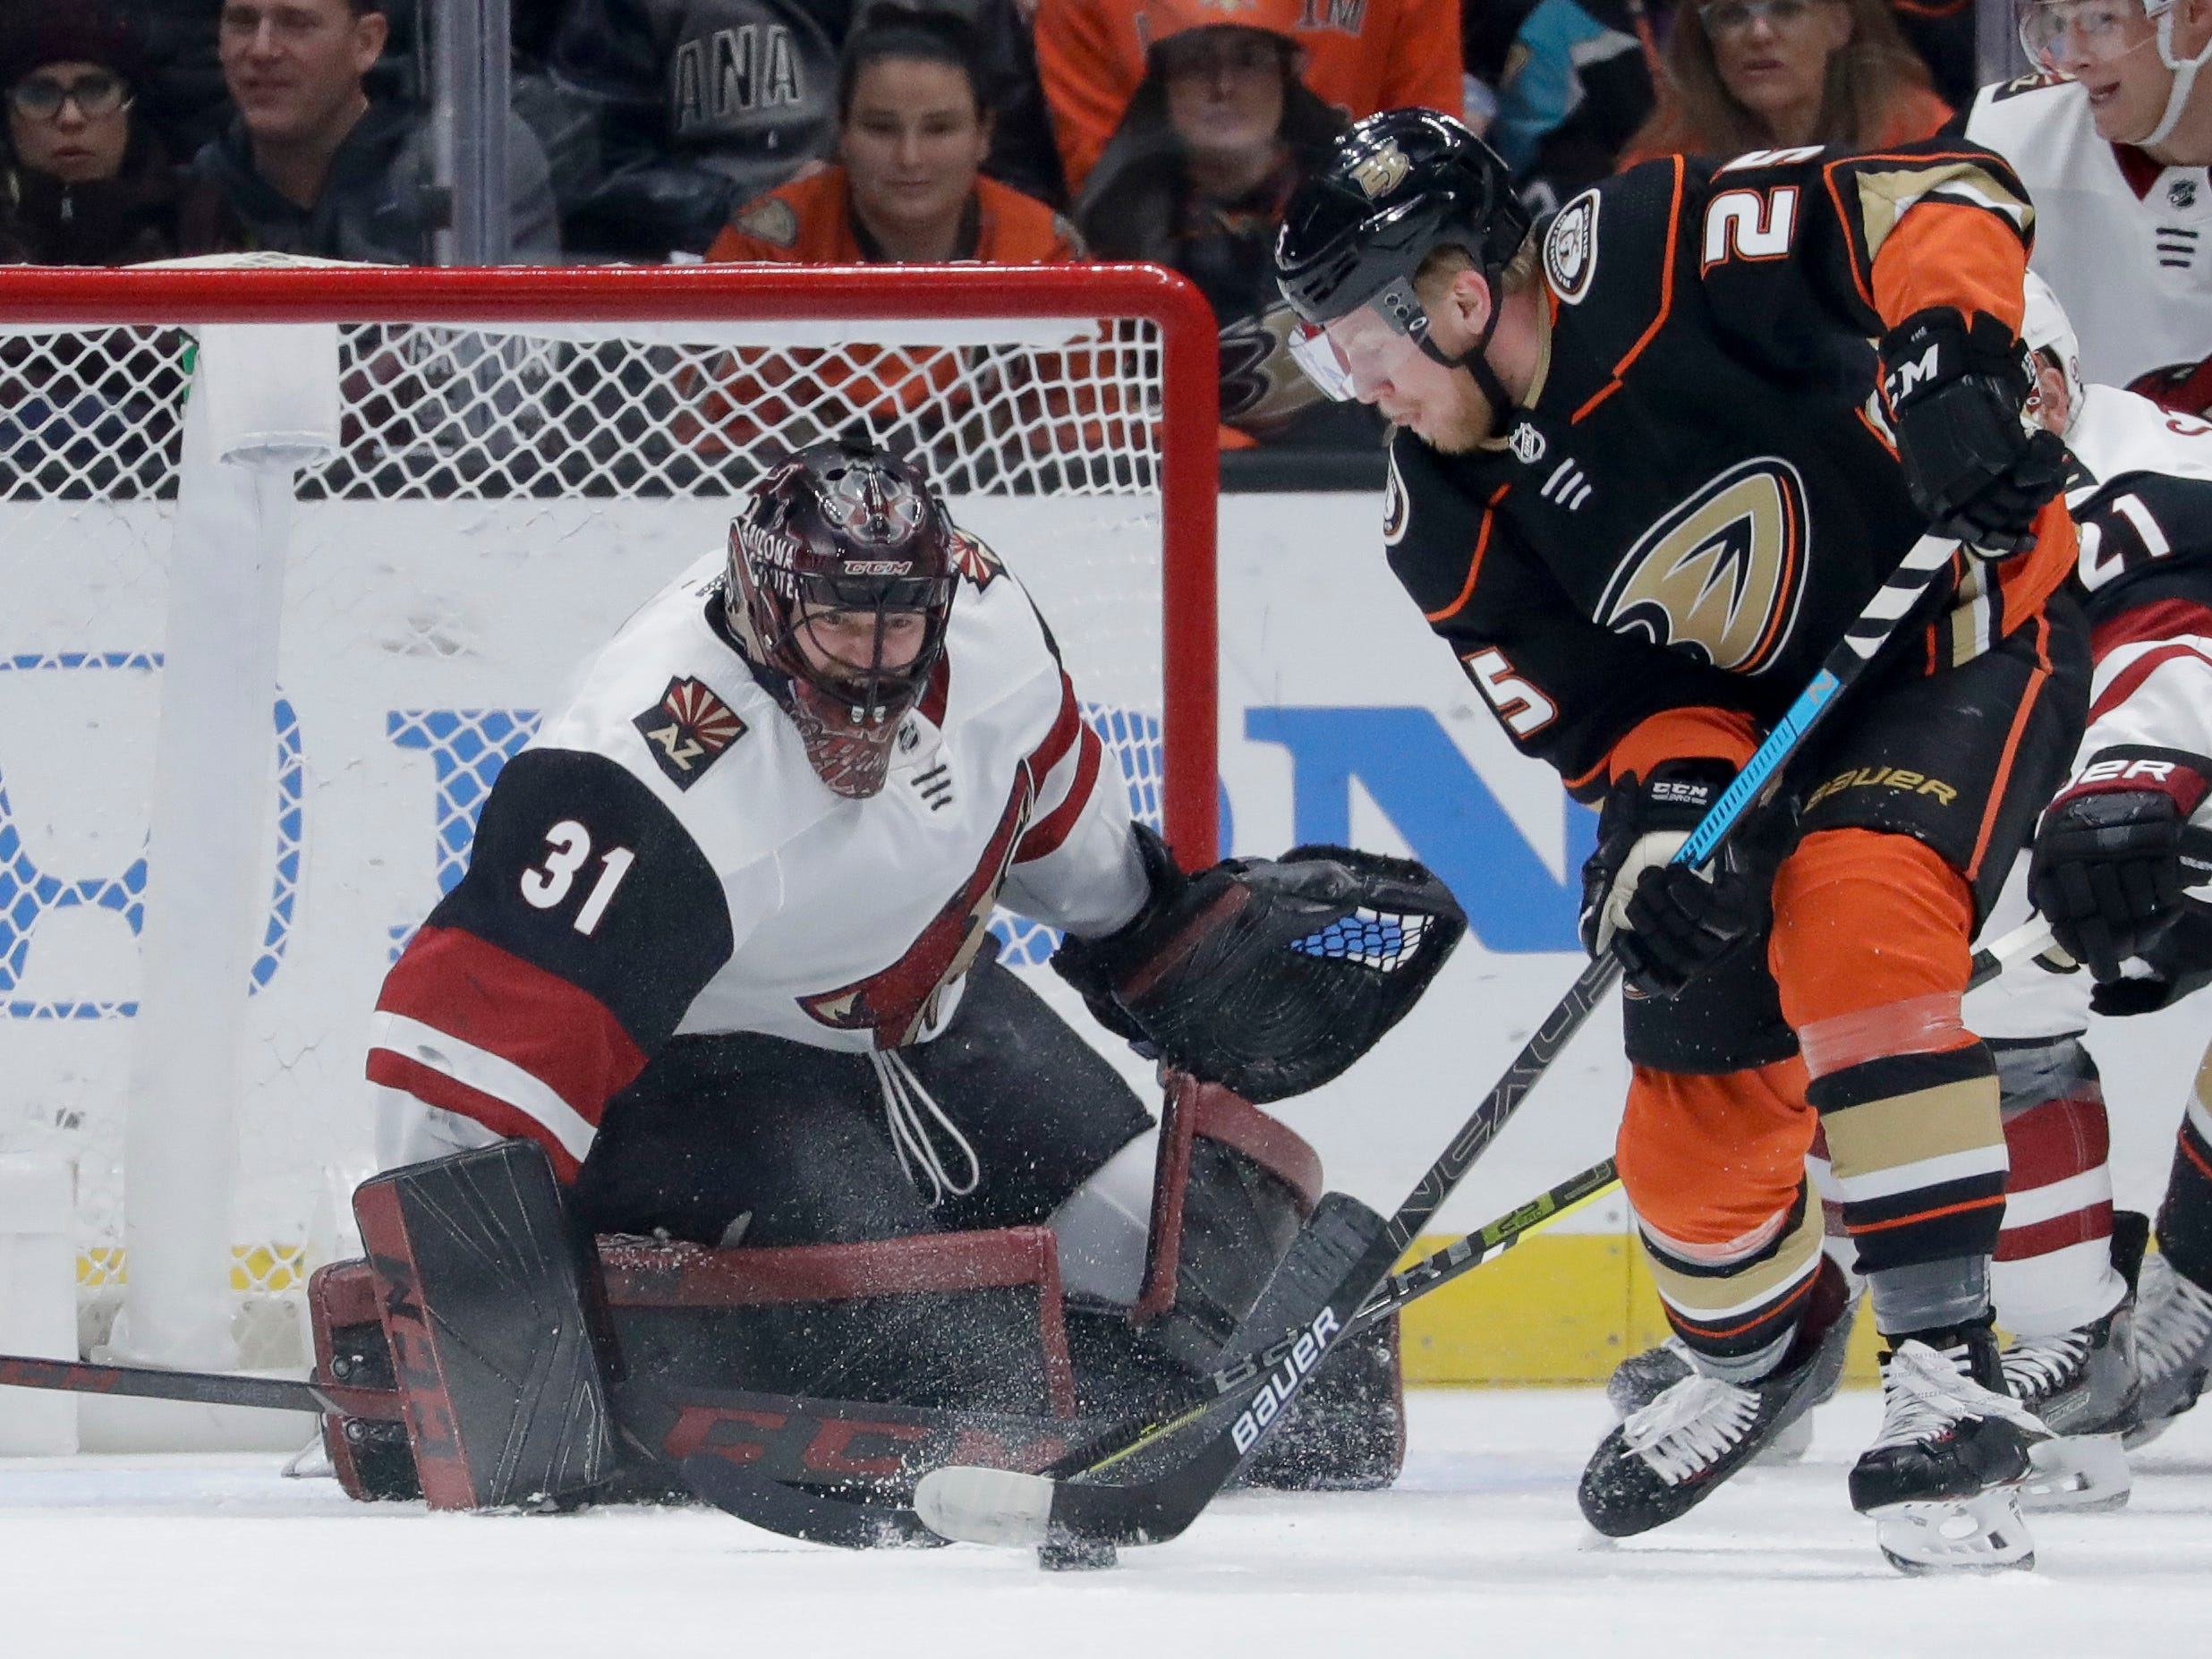 Arizona Coyotes goaltender Adin Hill, left, blocks a shot by Anaheim Ducks right wing Ondrej Kase during the first period of an NHL hockey game in Anaheim, Calif., Saturday, Dec. 29, 2018. (AP Photo/Chris Carlson)